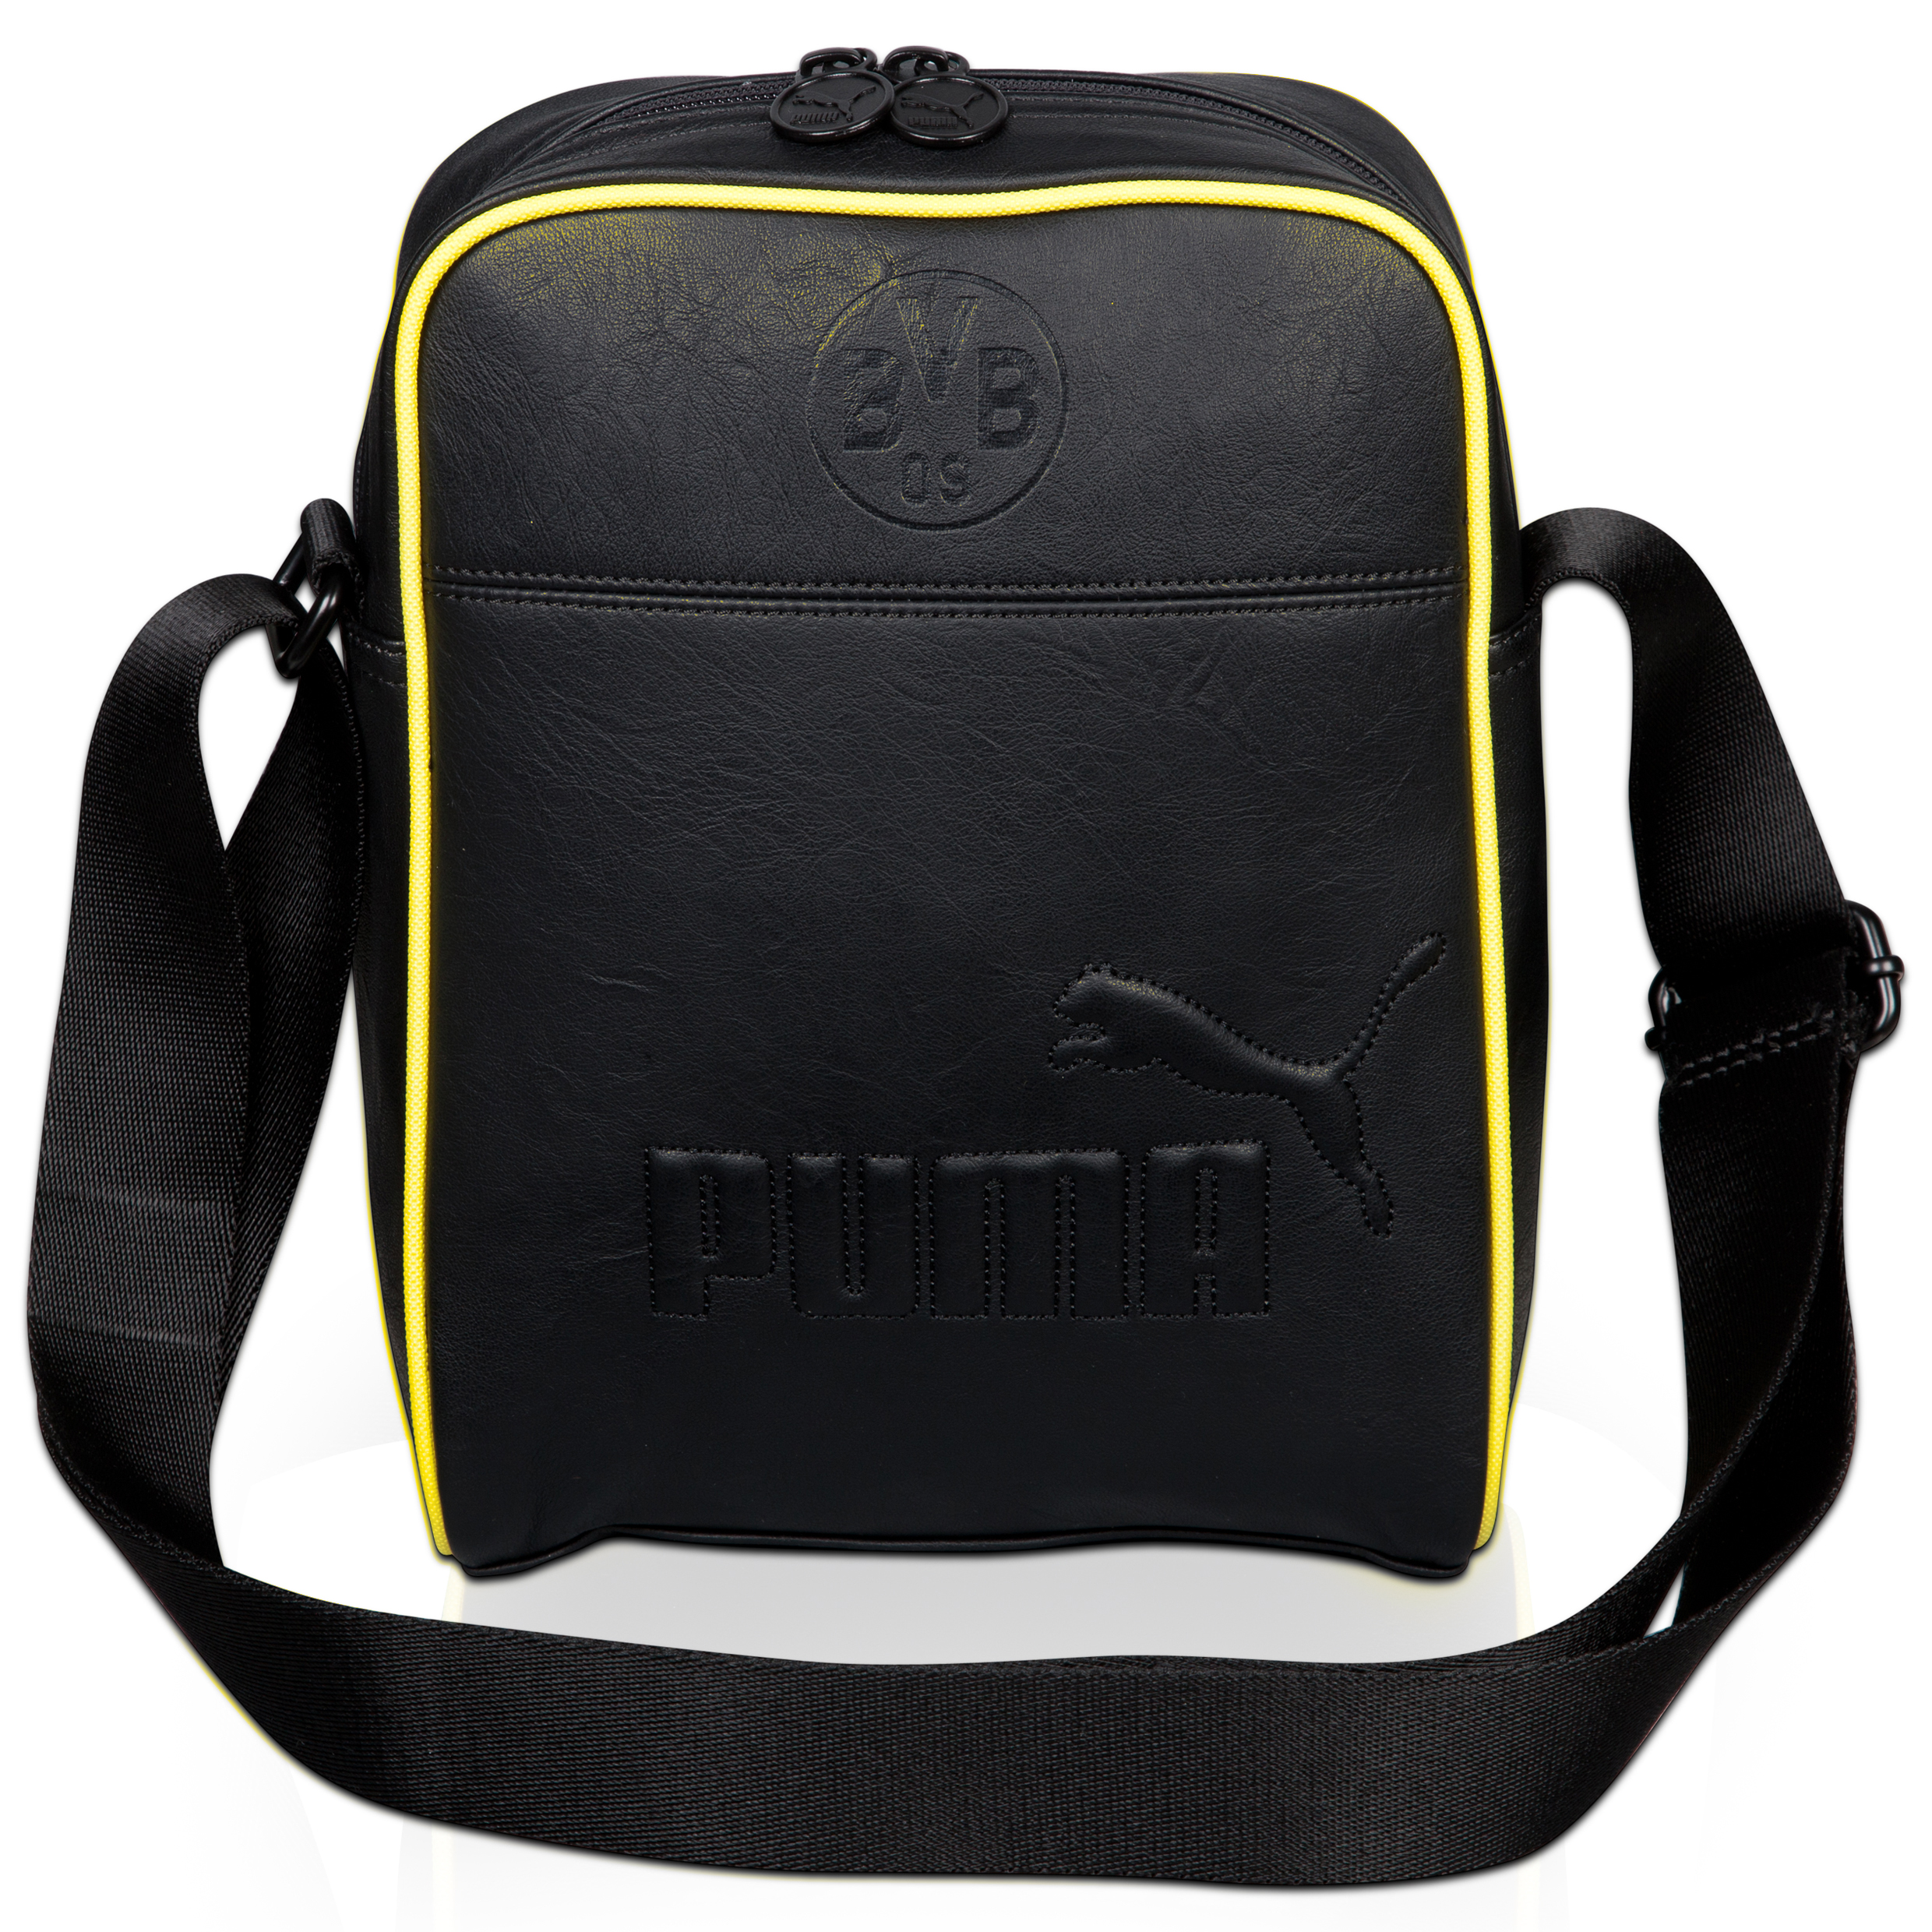 BVB Small Retro Shoulder Bag